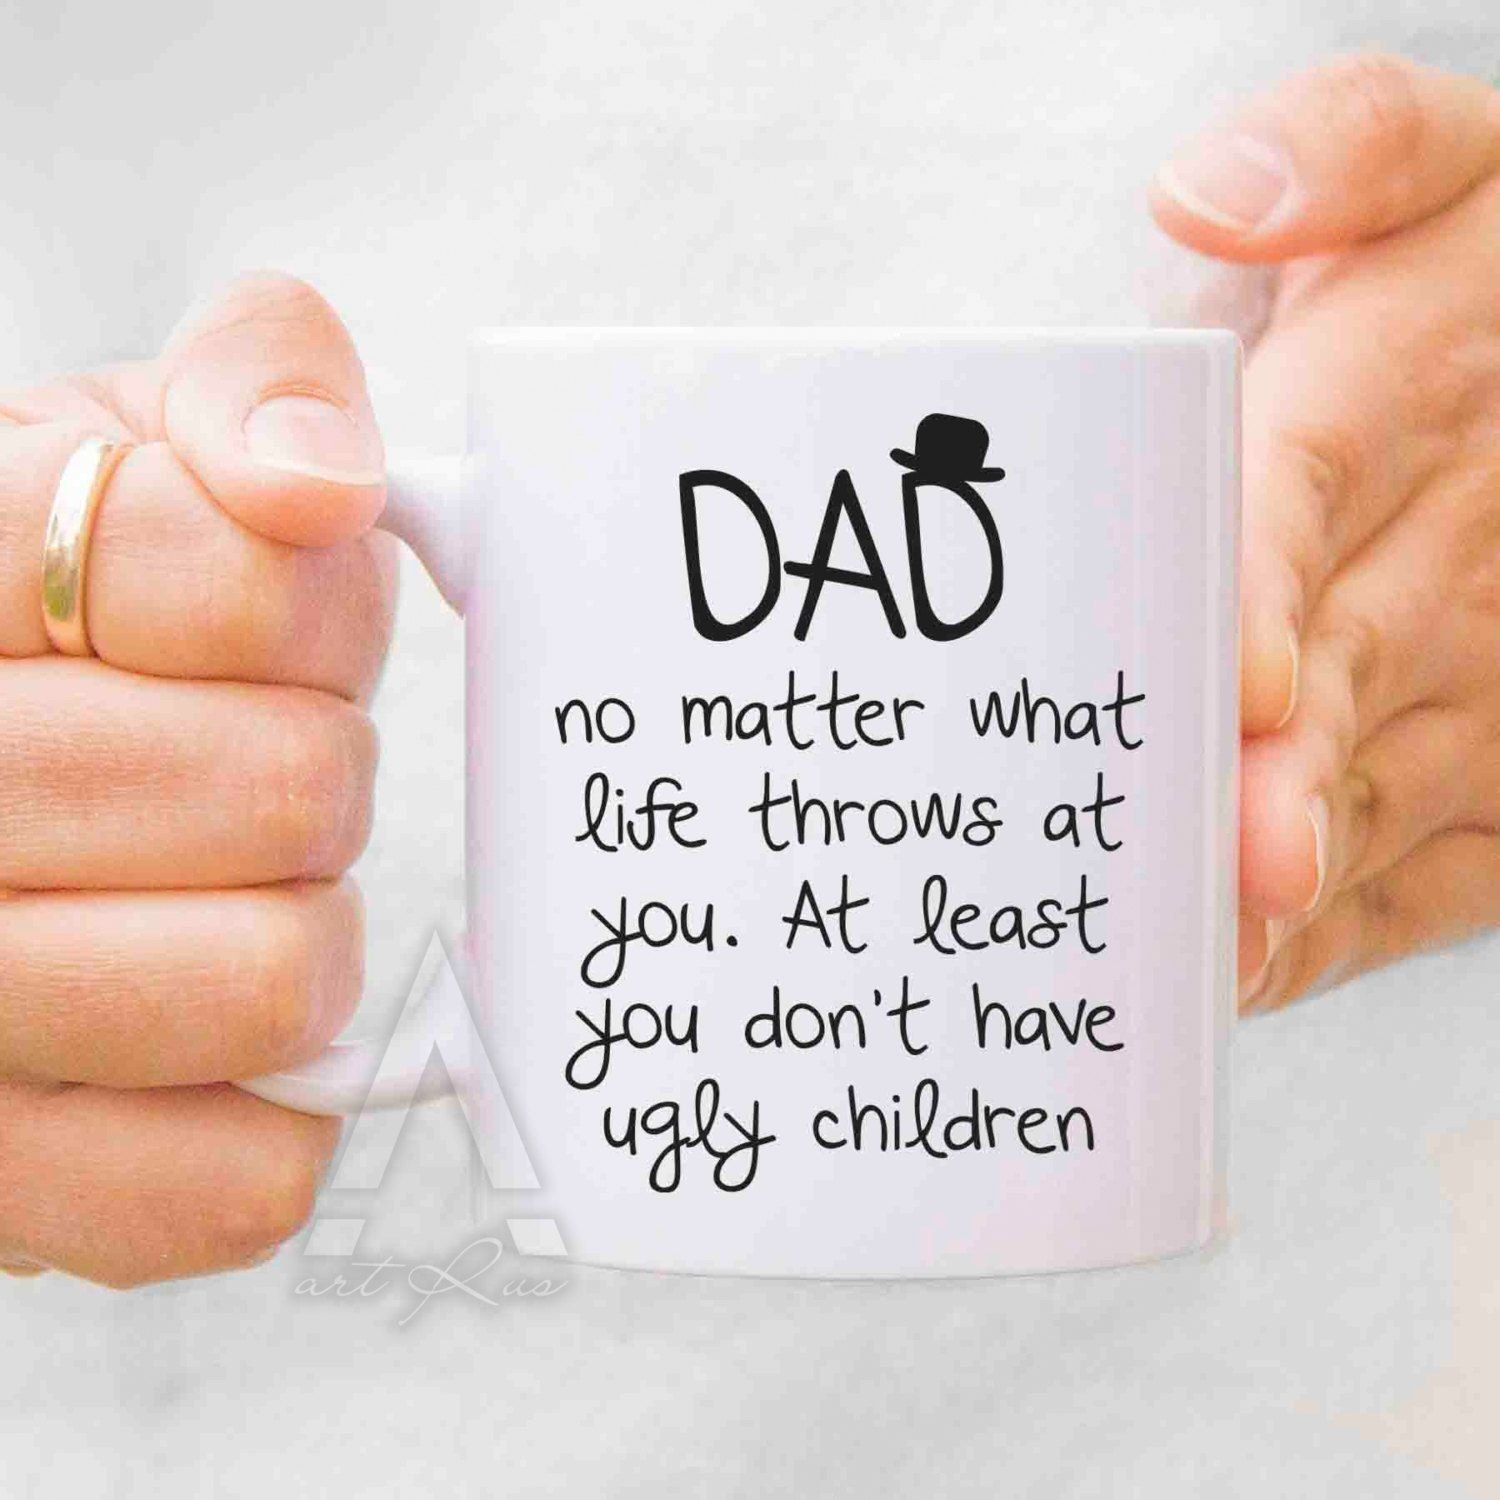 10 Attractive Christmas Ideas For Dad From Daughter Birthday Gift Fathers Day